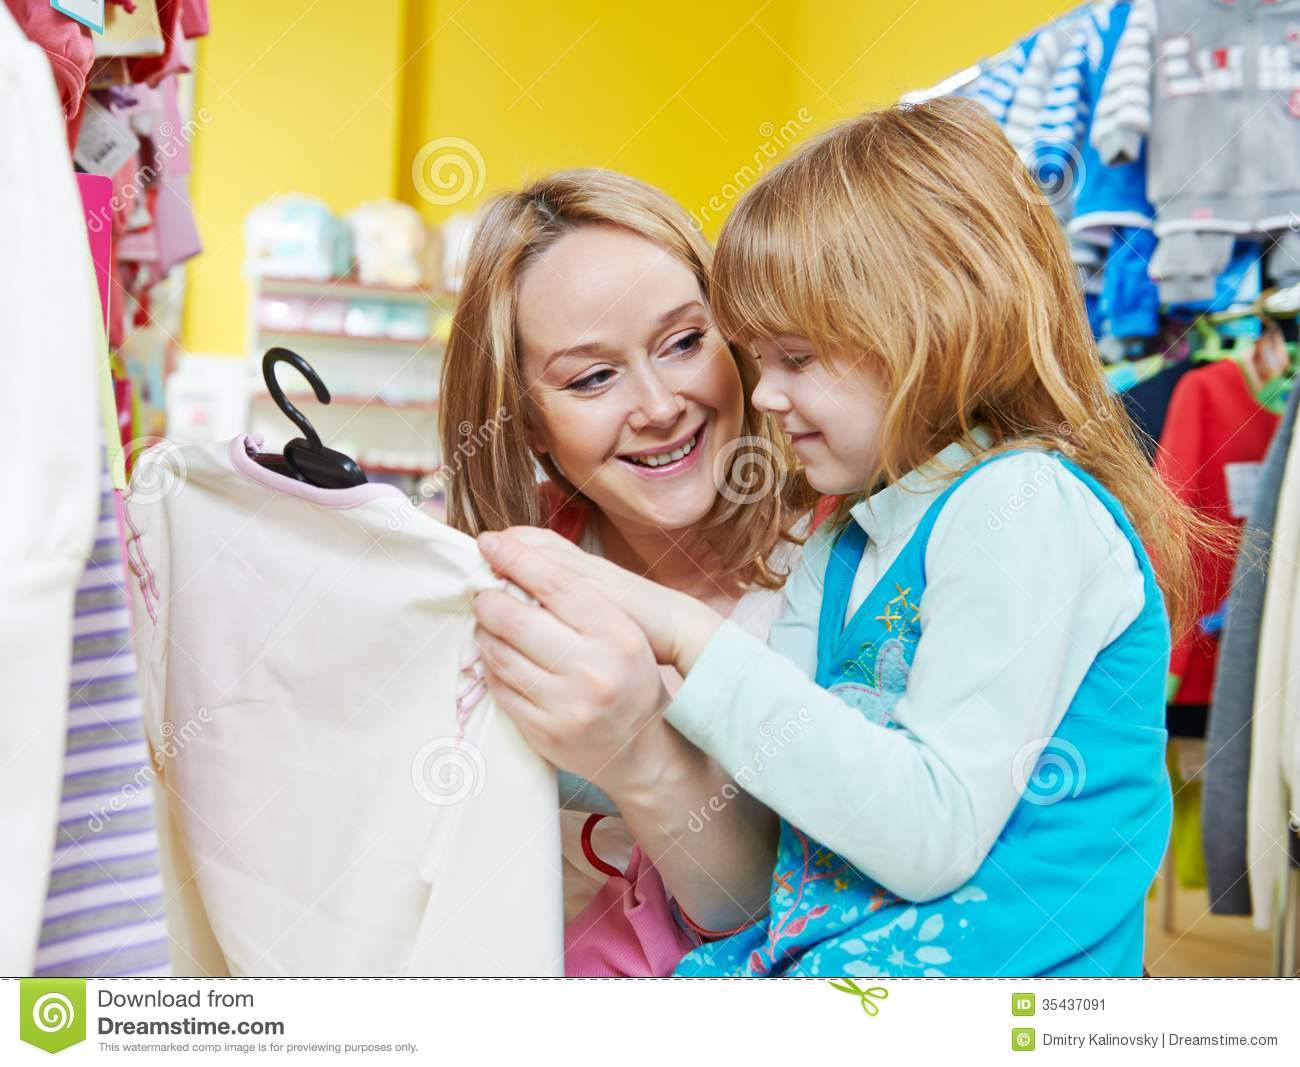 Woman And Little Girl Shopping Clothes Stock Image - Image: 35437091